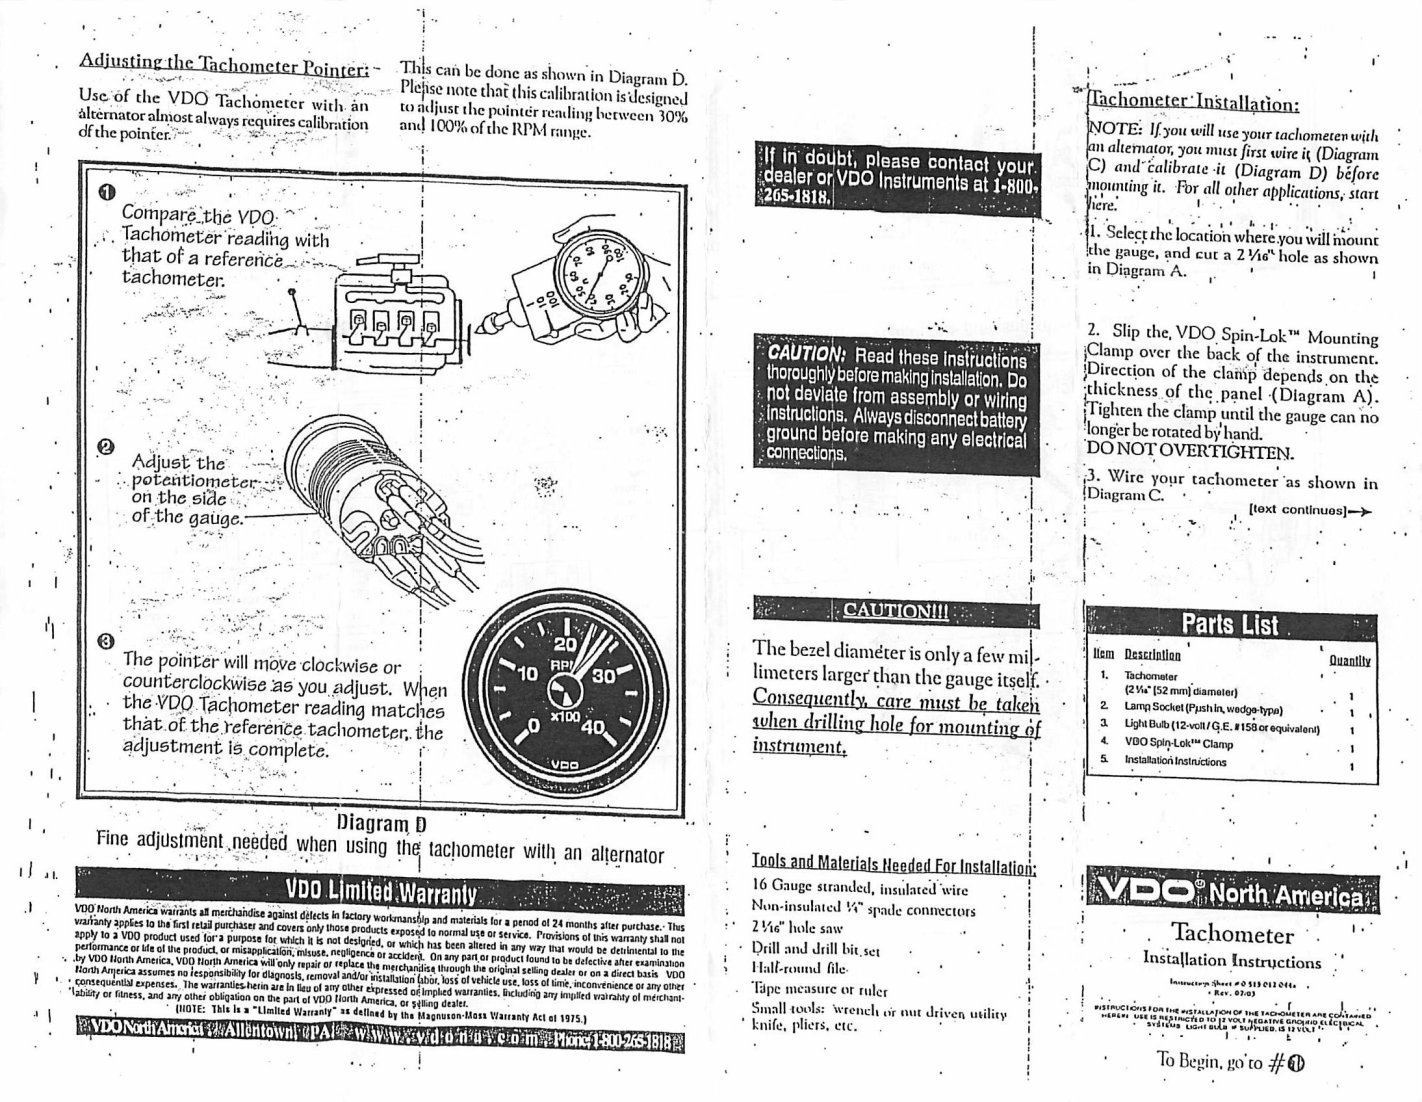 Thesamba Vdo Tachometer Instructions